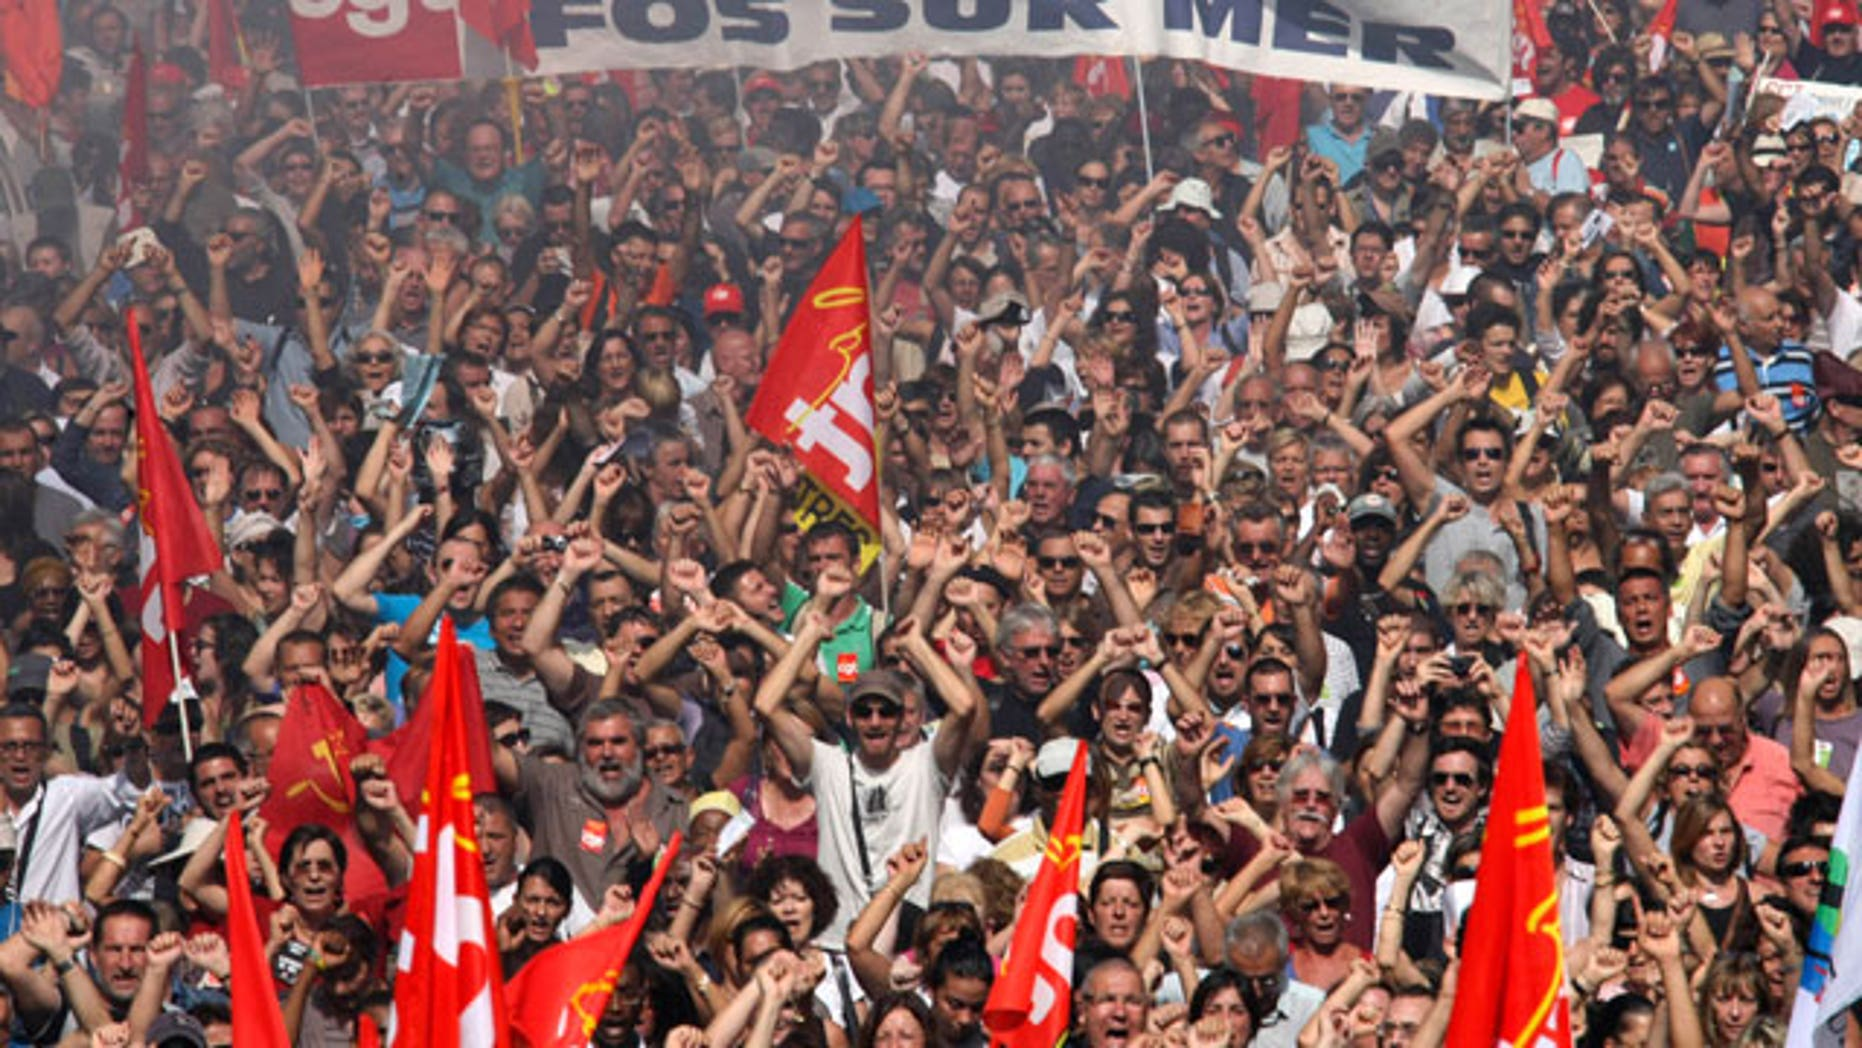 People march during a protest, in Marseille, southern France, Thursday, Sept. 23, 2010. French commuters squeezed onto limited trains or fought for rare parking spots Thursday as a second round of strikes against President Nicolas Sarkozy's plan to raise the retirement age to 62 hobbled trains, planes and schools across the country.